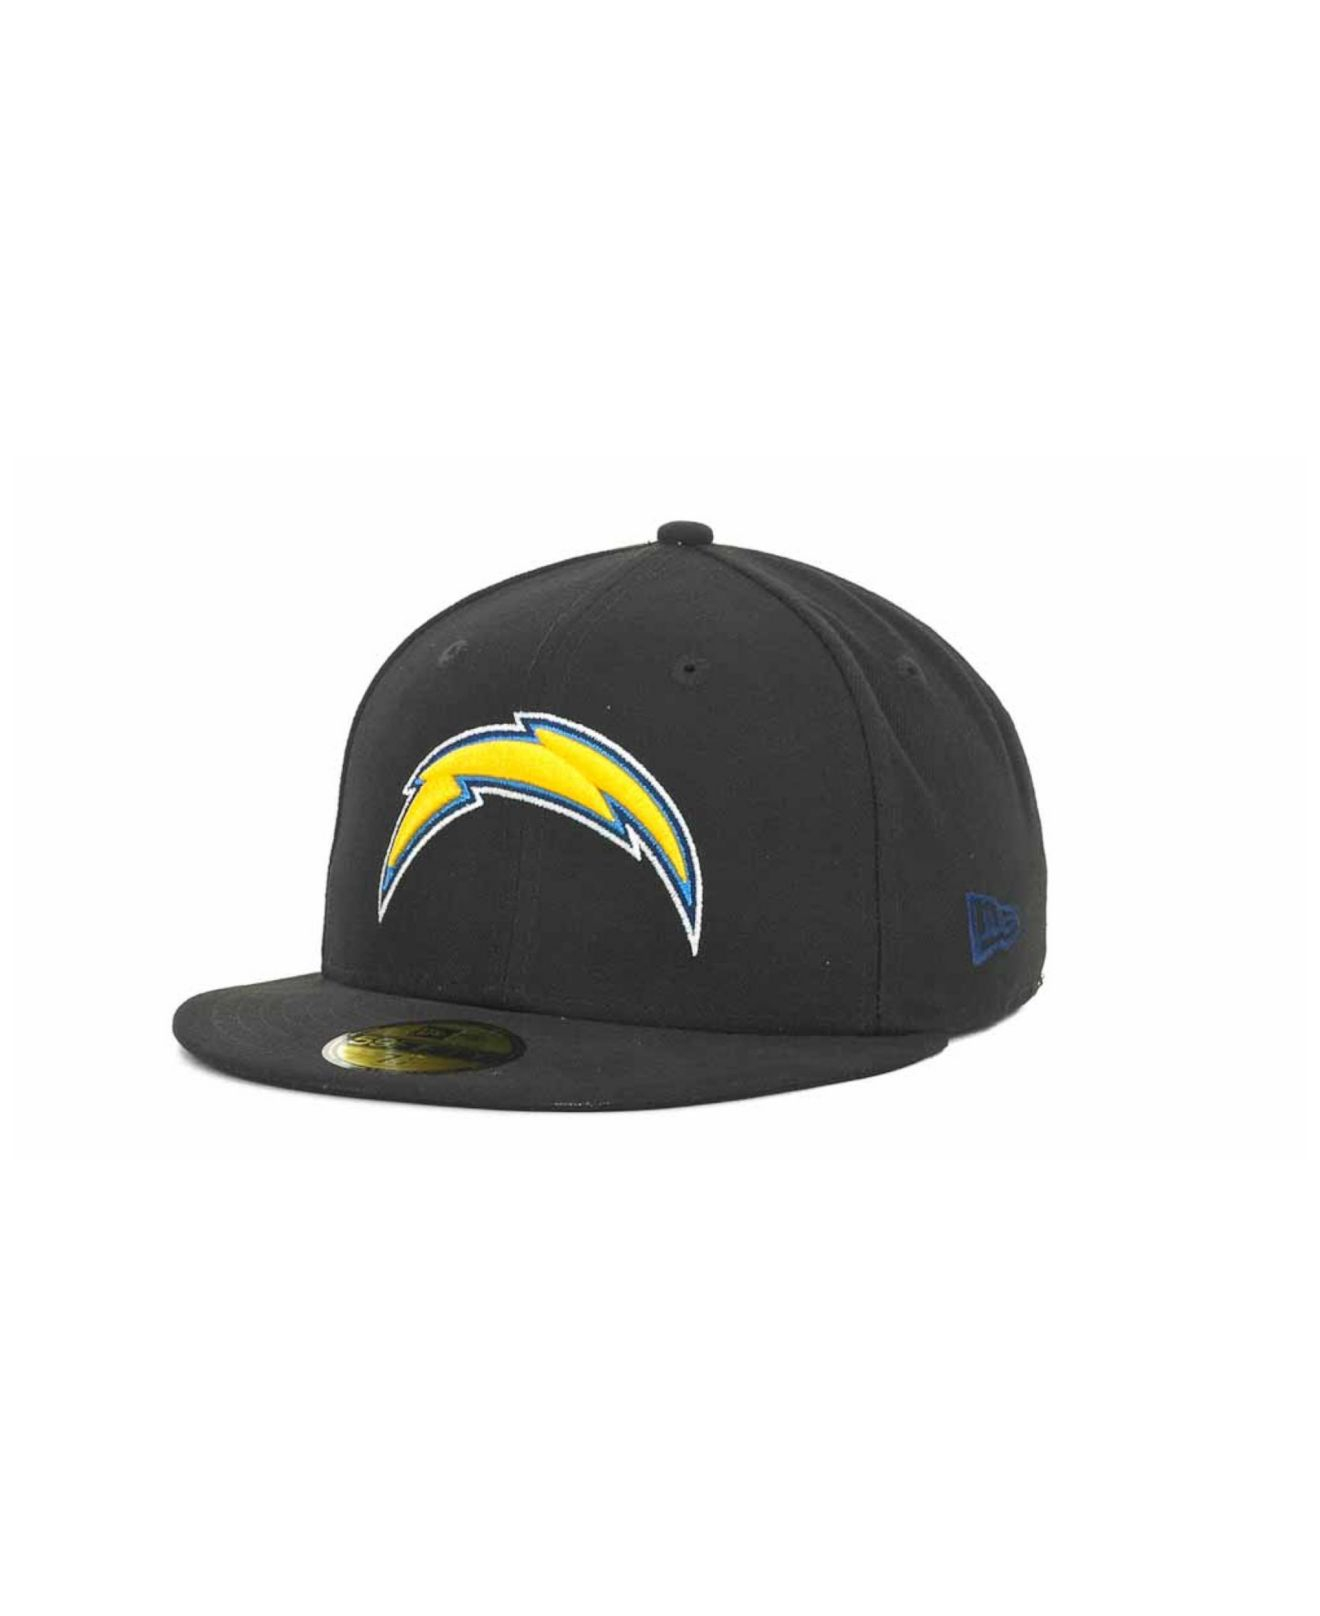 San Diego Chargers Car Accessories: Ktz San Diego Chargers Nfl Black Team 59fifty Cap In Black